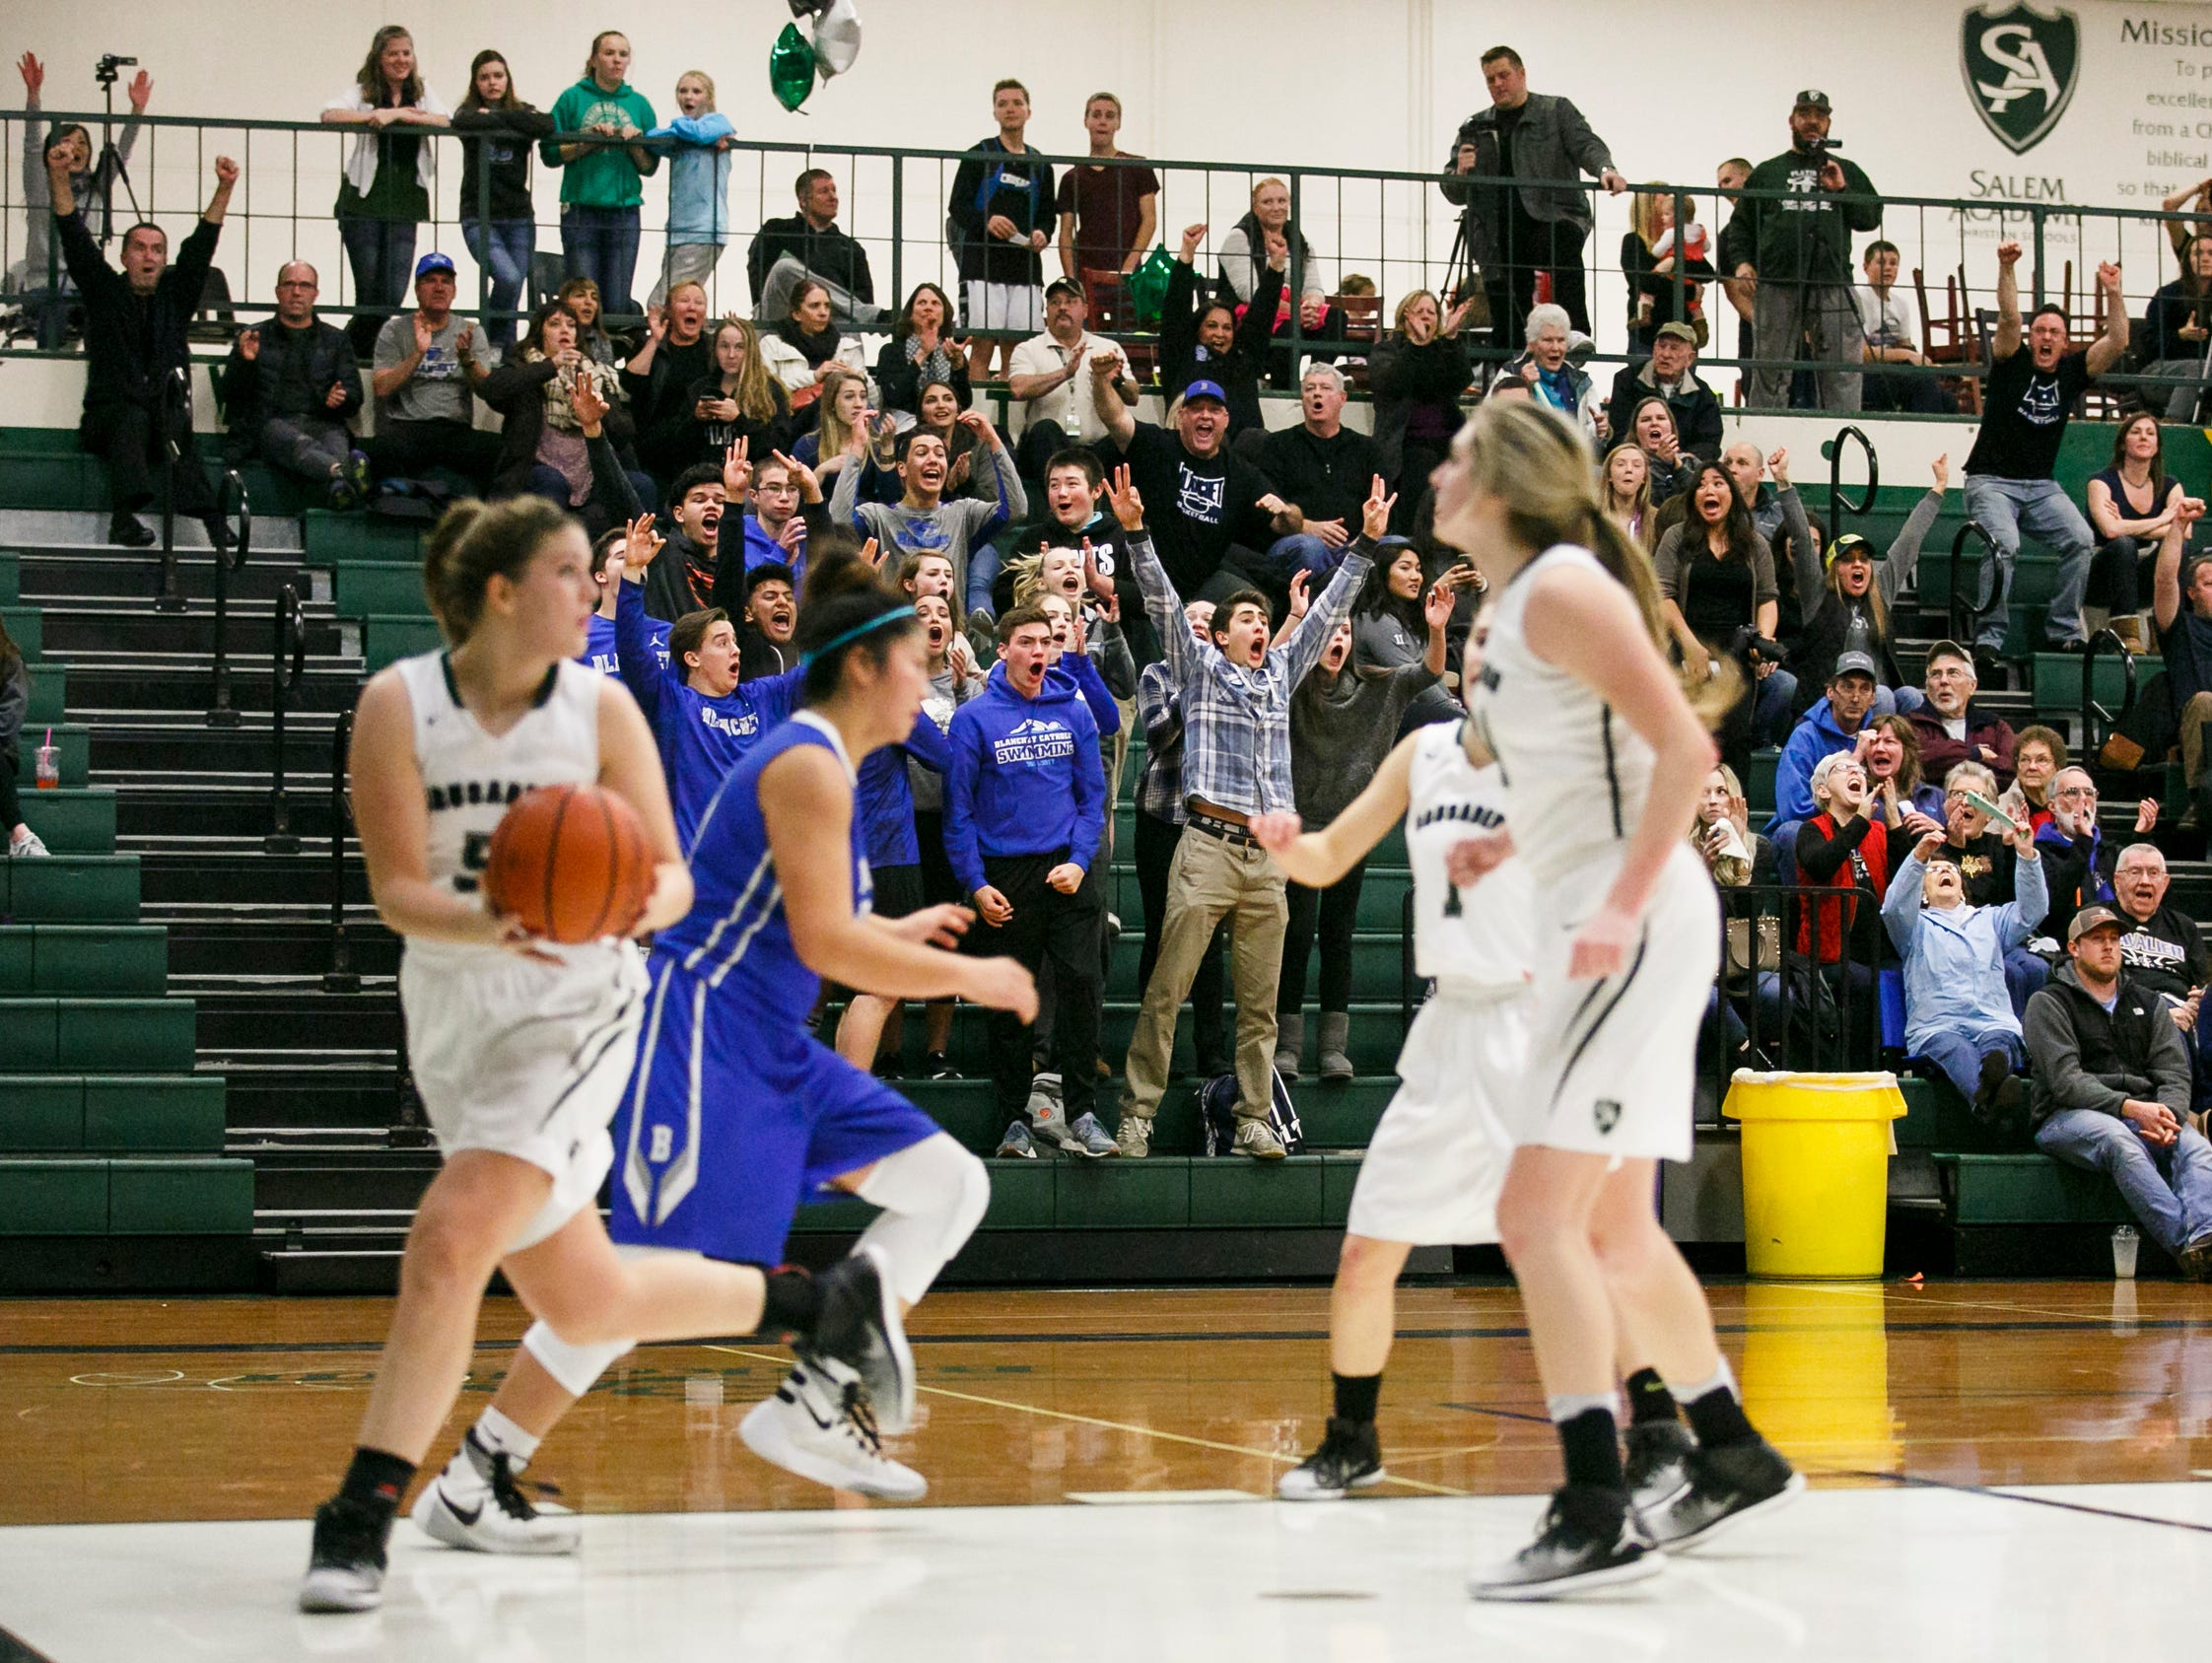 Blanchet fans cheer as Sophia Poole (15) scores a three-pointer in the final minute of a game against Salem Academy on Wednesday, Jan. 4, 2017 at Salem Academy. No. 4-ranked Blanchet defeated No. 1 Salem Academy 42-40 in the PacWest Conference game.